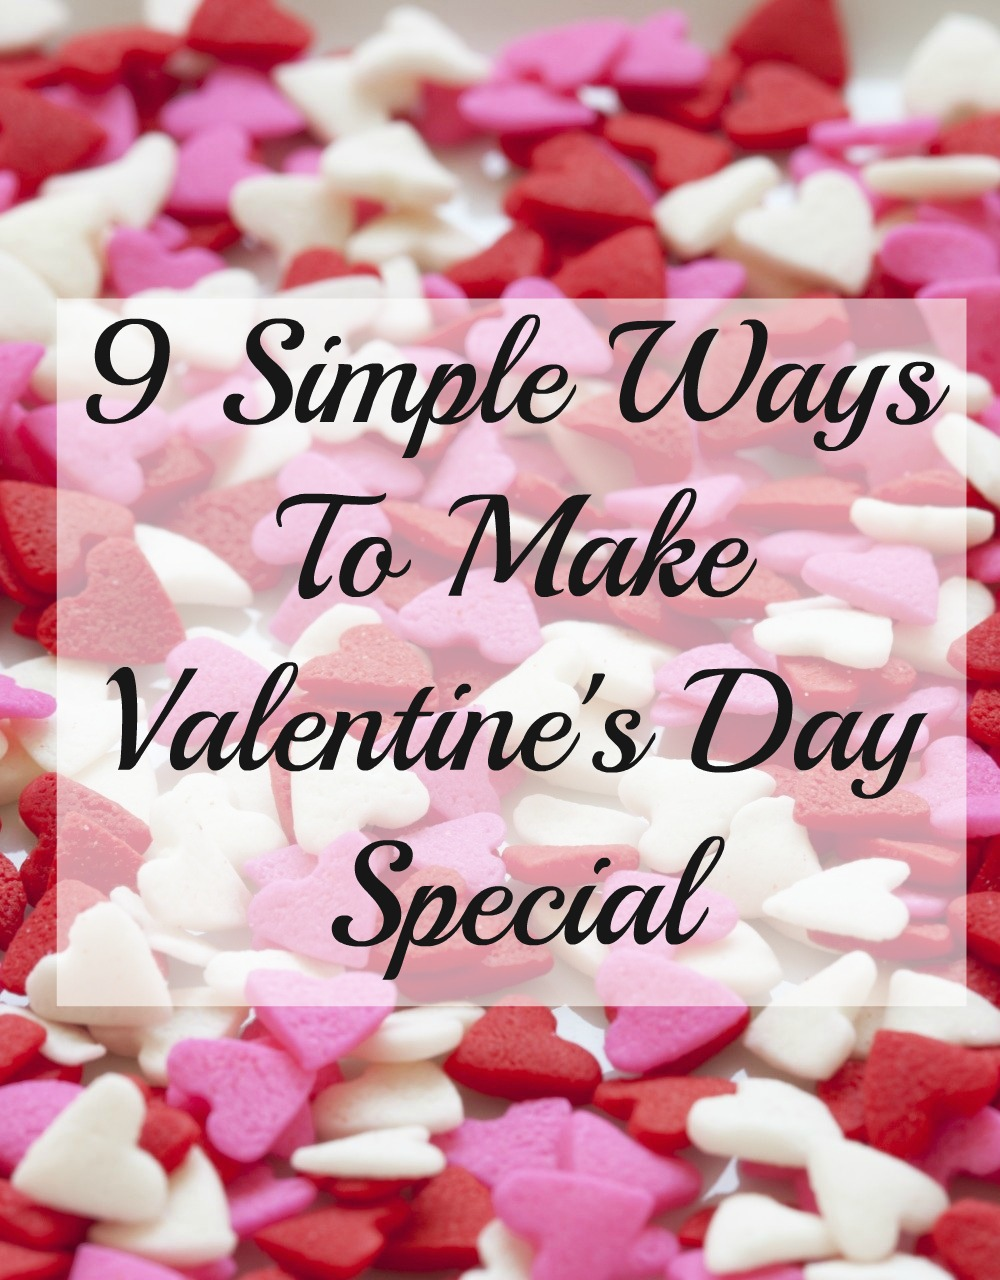 9 simple ways to make your husband's valentine's day special, Ideas